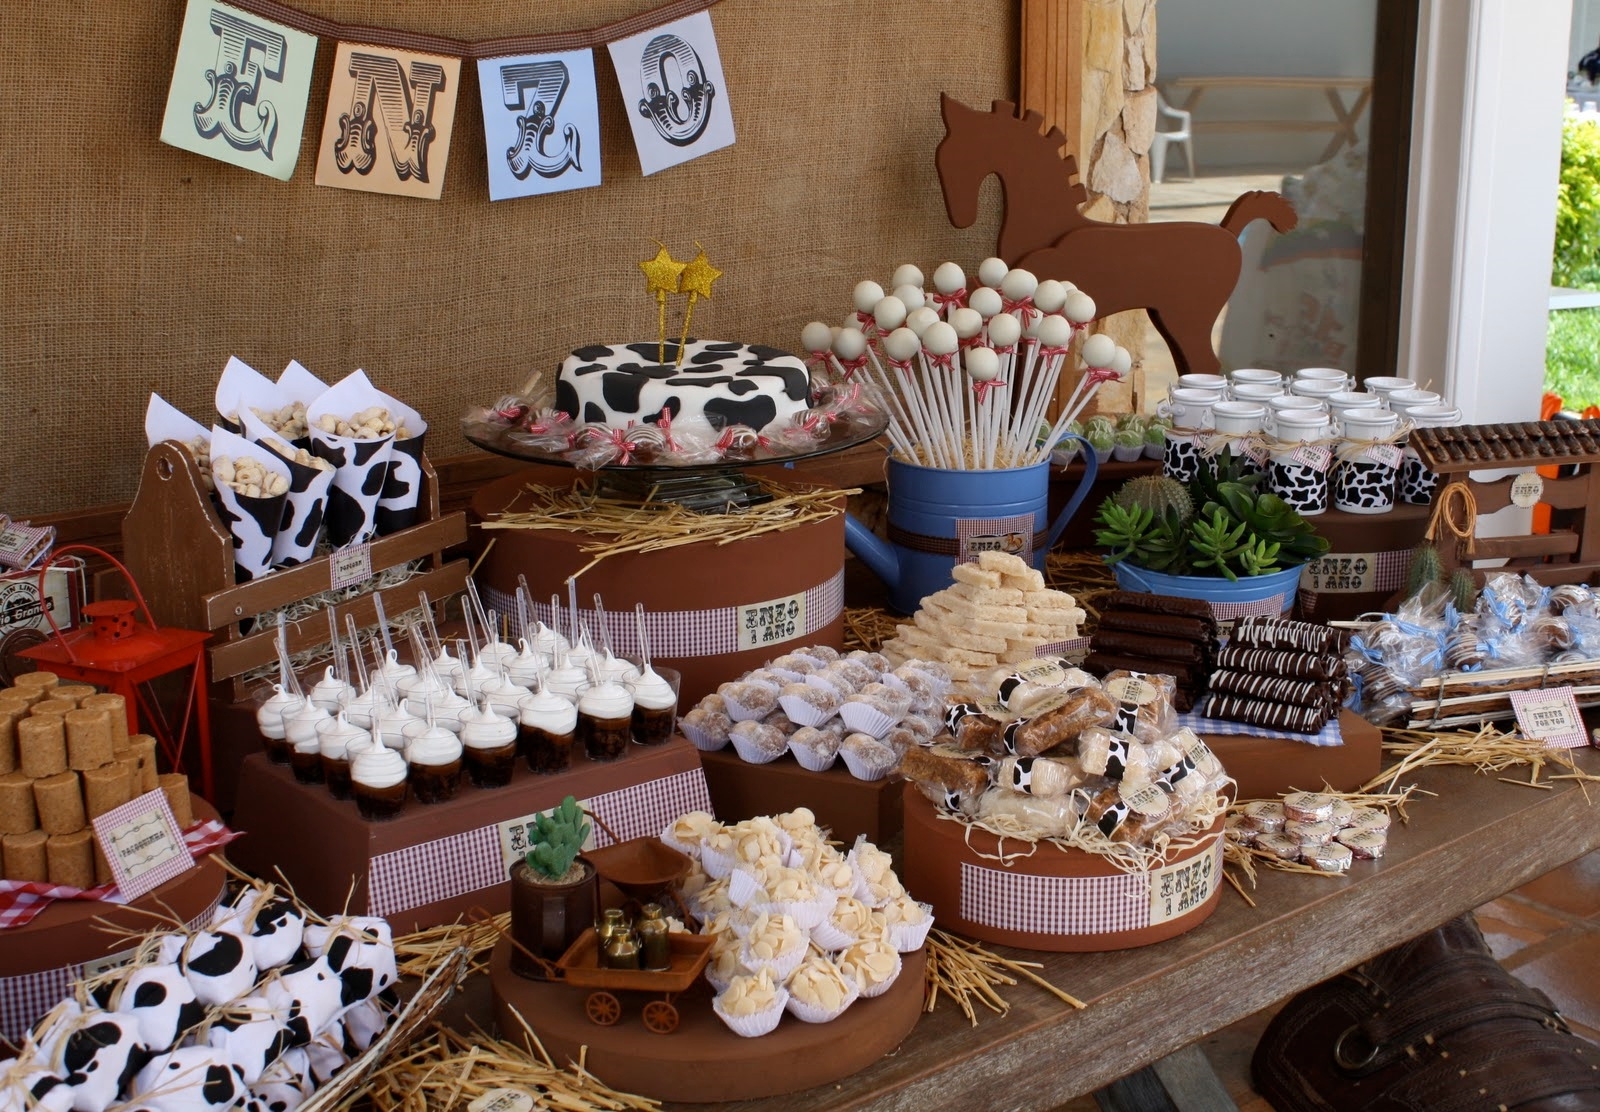 10 Attractive Western Party Ideas For Adults ideas of western party decorations that you can pick home design 2020